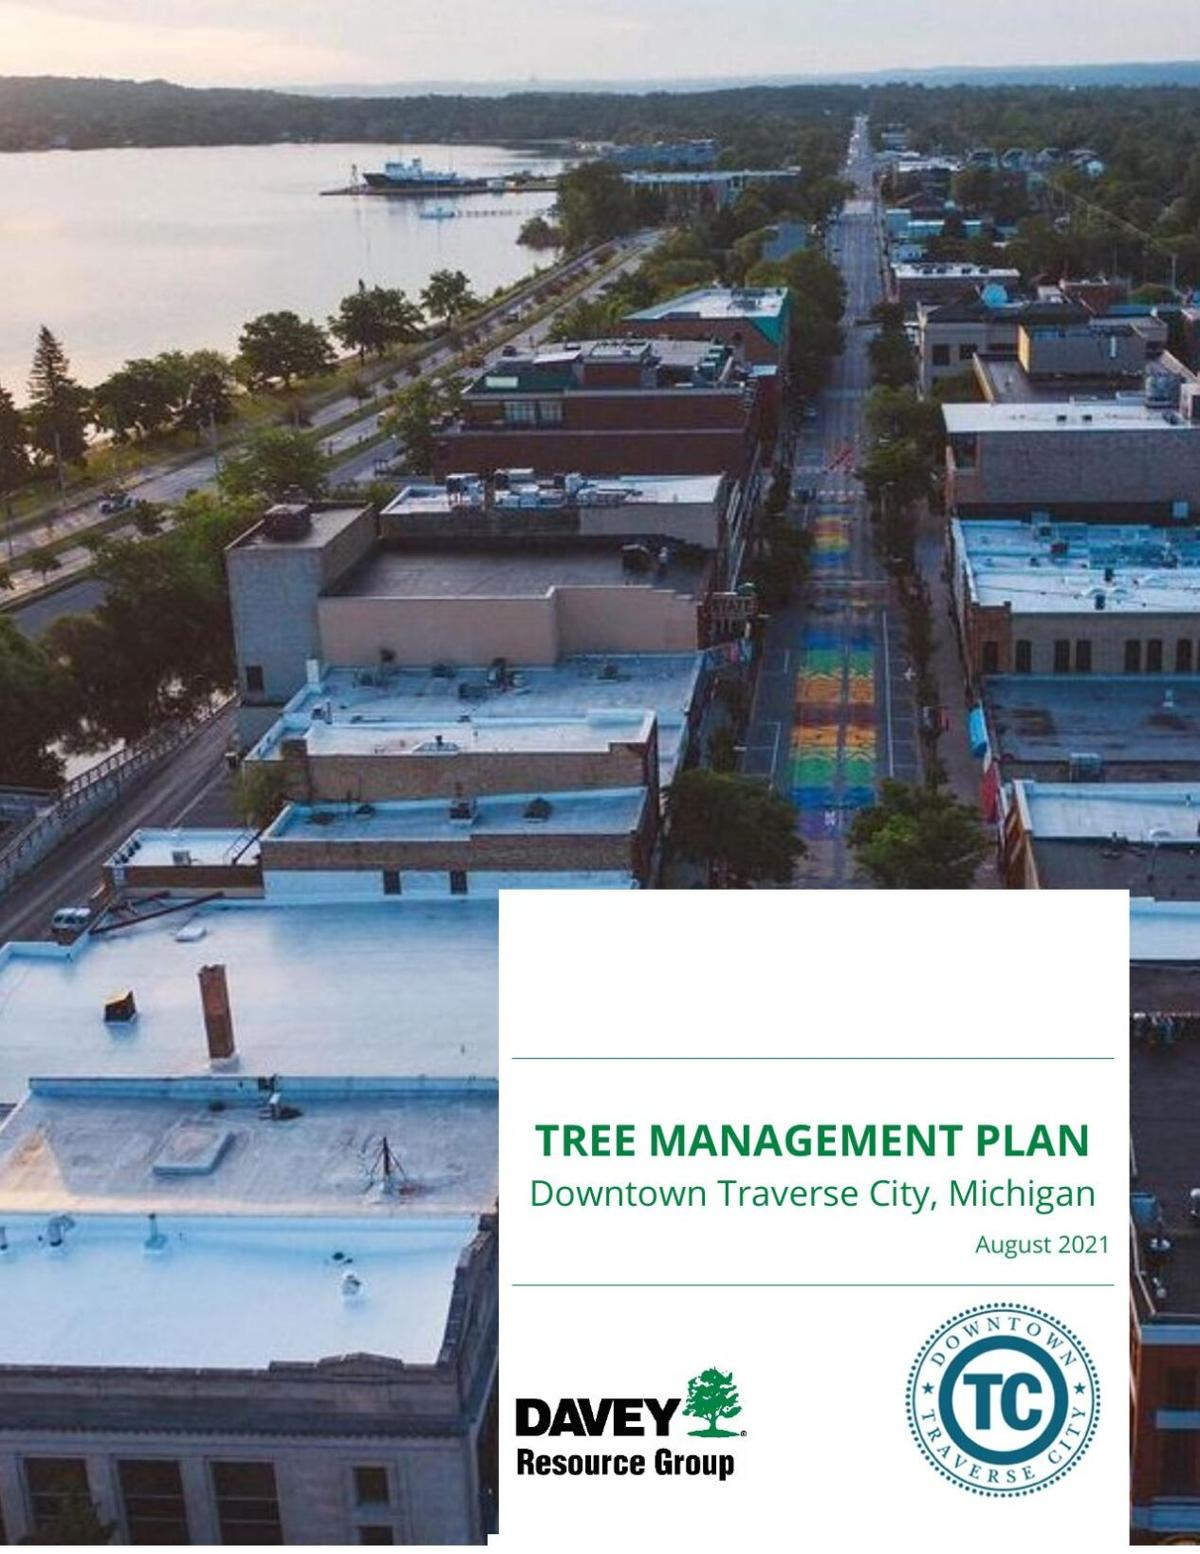 2021 Tree Management Plan for Downtown Traverse City.